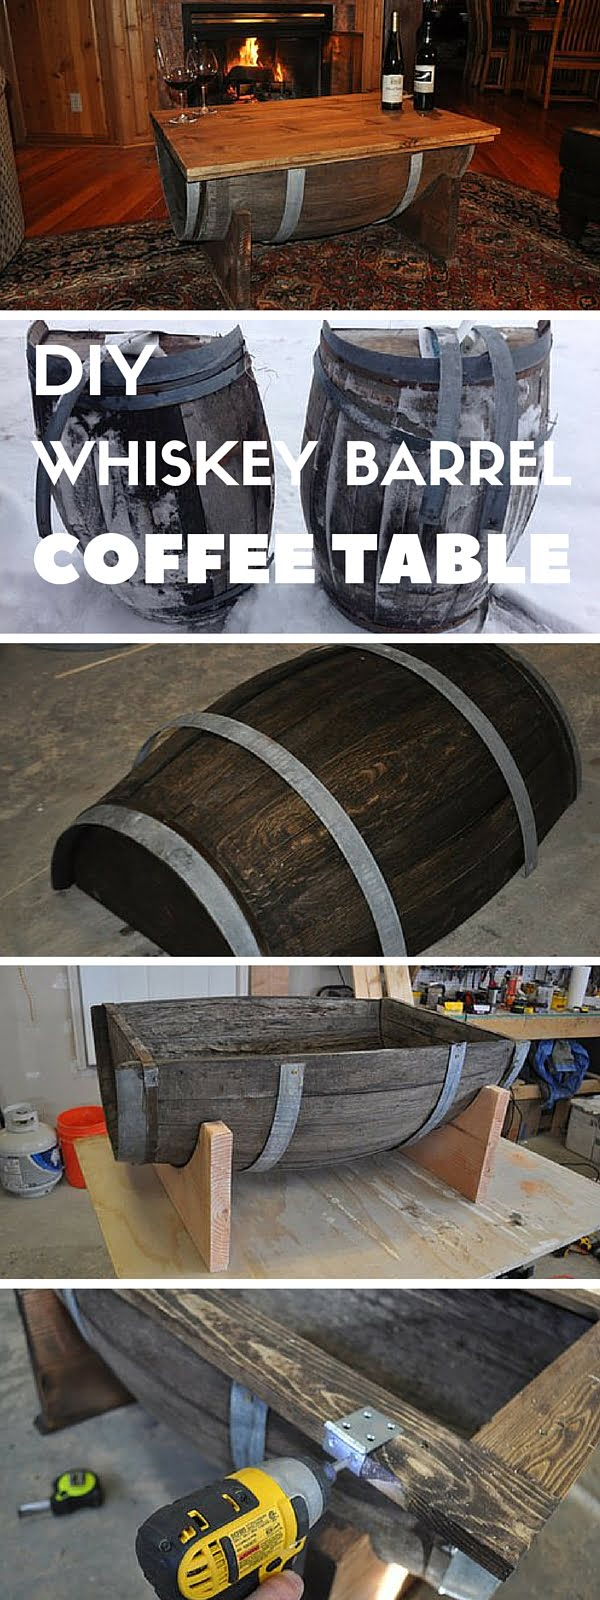 Check out the tutorial: #DIY Whiskey Barrel Coffee Table #crafts #homedecor